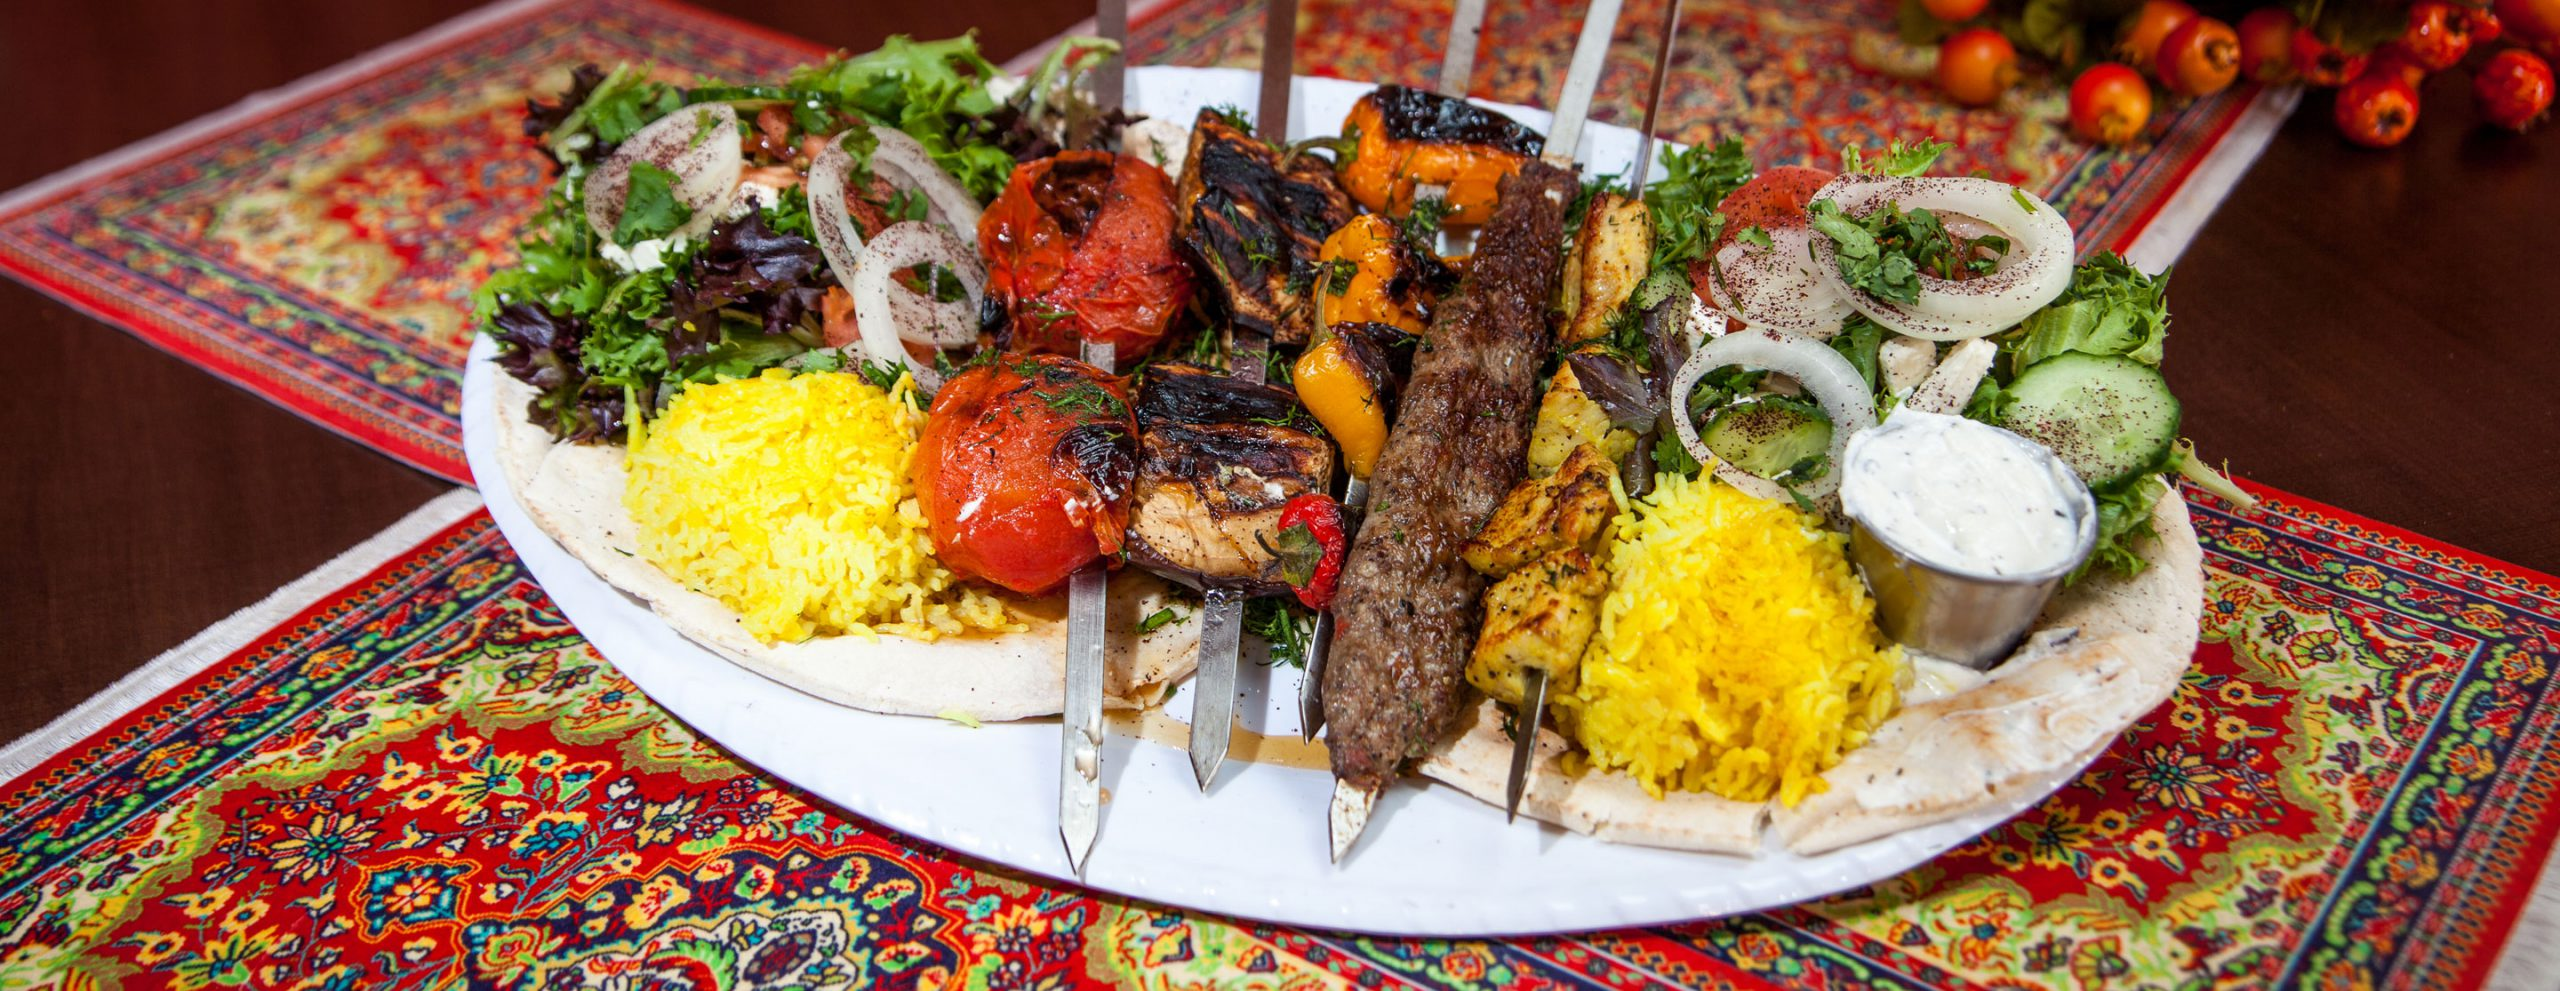 A platter of Caspian Grill food including kabobs, rice, salad, and pita.